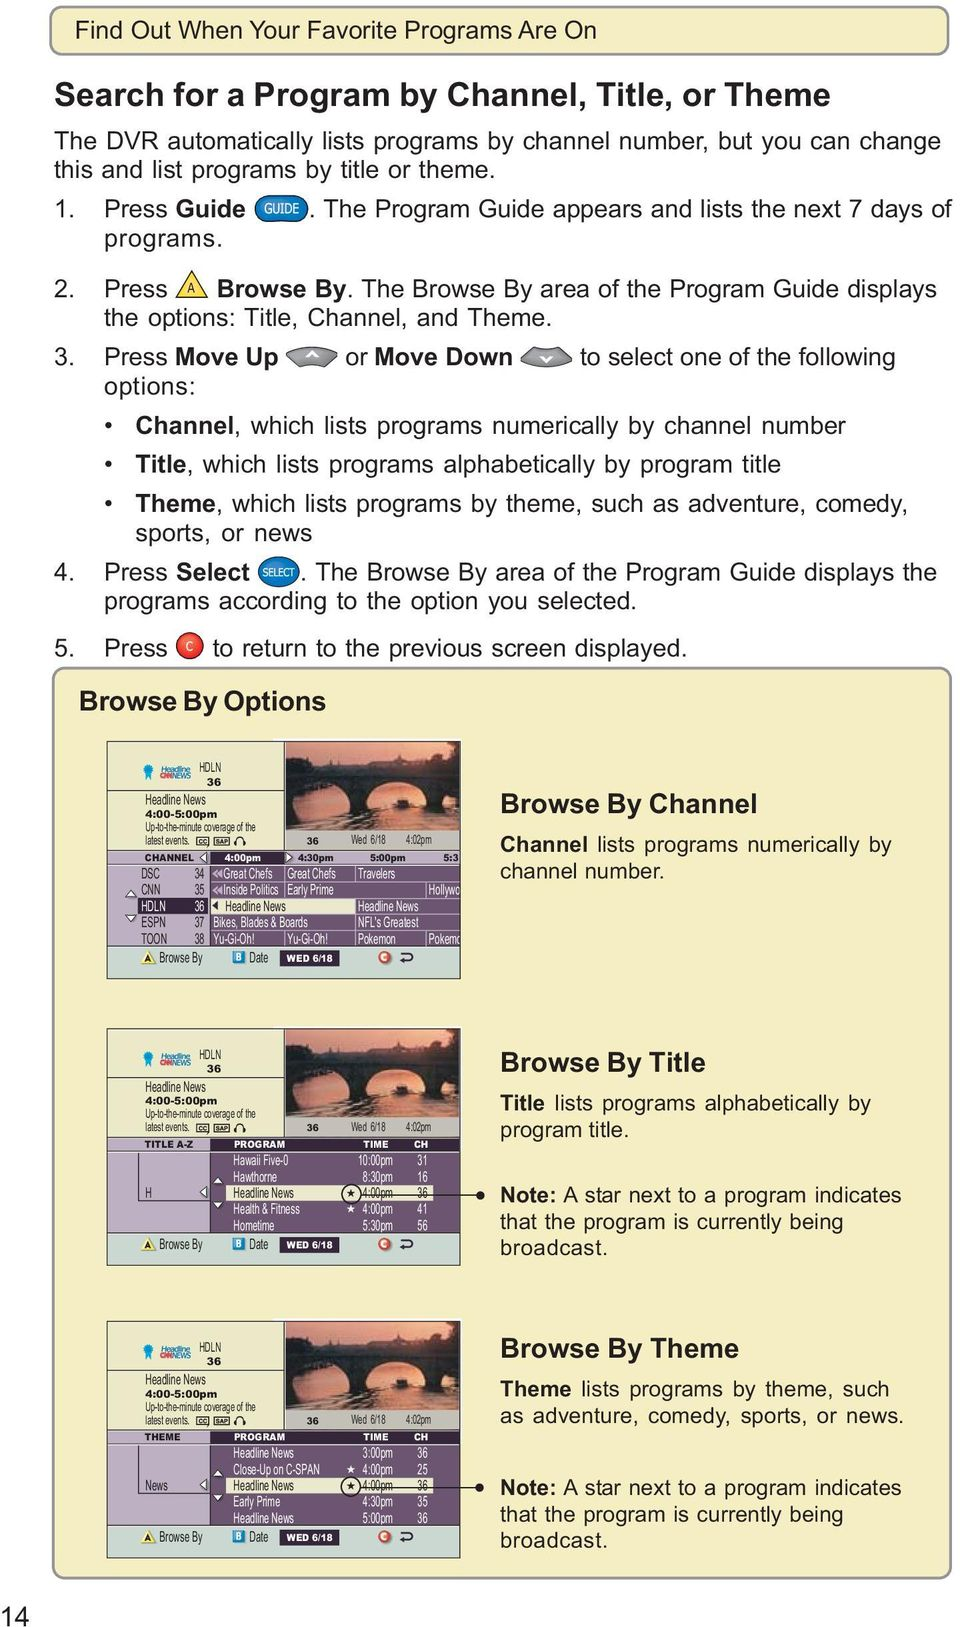 The Browse By area of the Program Guide displays the options: Title, Channel, and Theme. 3.